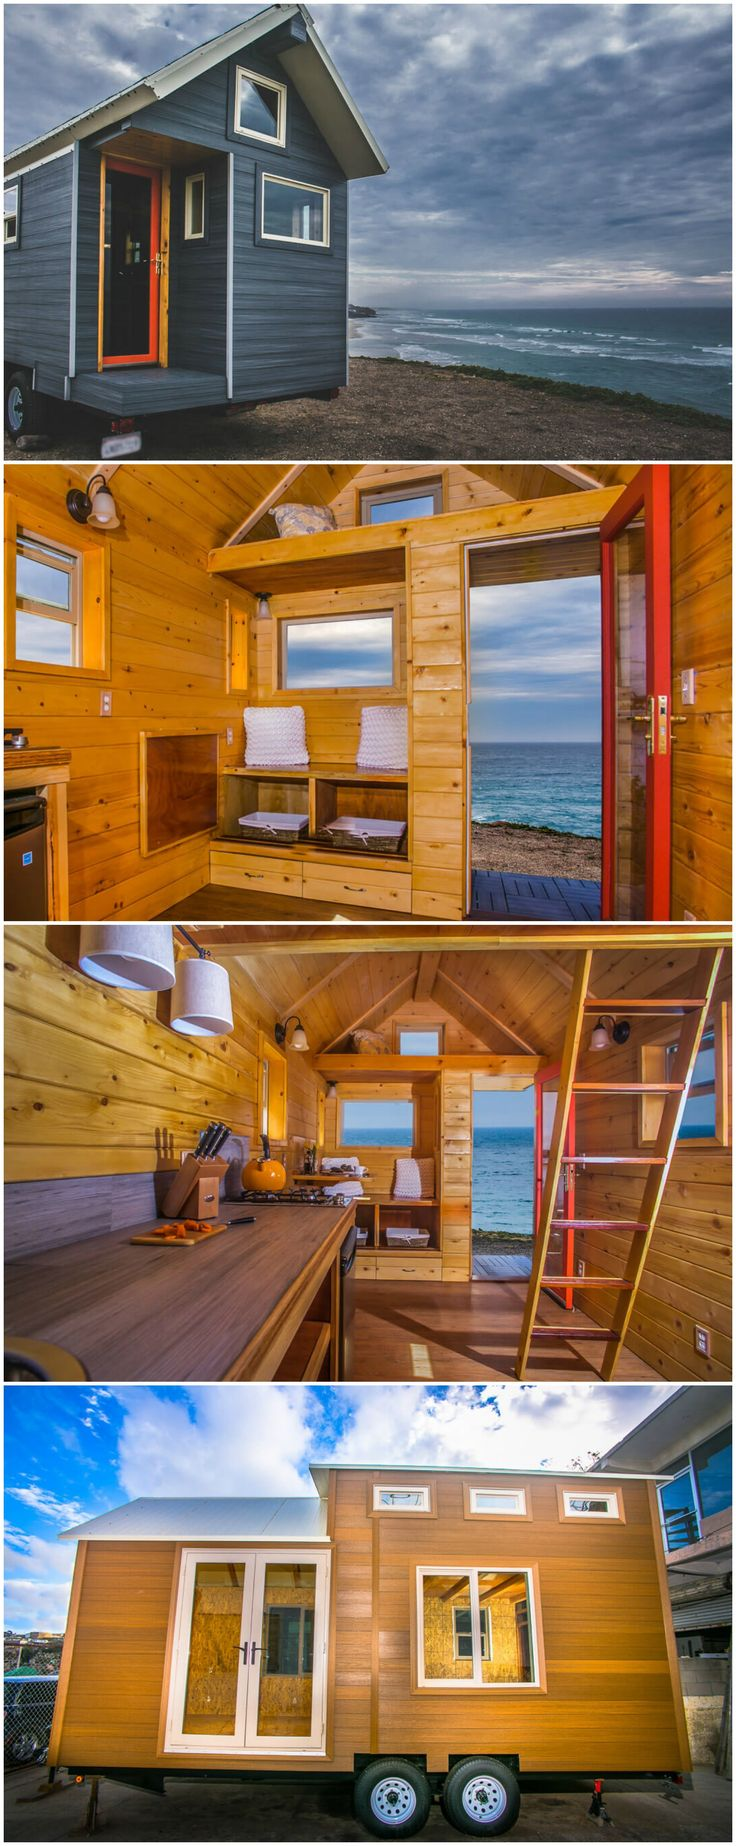 Monarch Tiny Home is a gorgeous tiny house built in San Diego, CA.  The 170 sq.ft. tiny house on wheels uses structural insulated panels (SIPs) for the walls and ceilingwhich makefor a stronger, better insulated structure. LED lighting, extra low VOC interior stain, a self-contained composting toilet, and UltraShield siding made from reclaimed wood fibers and recycled plastic bottles help make this an environmentally friendly option.